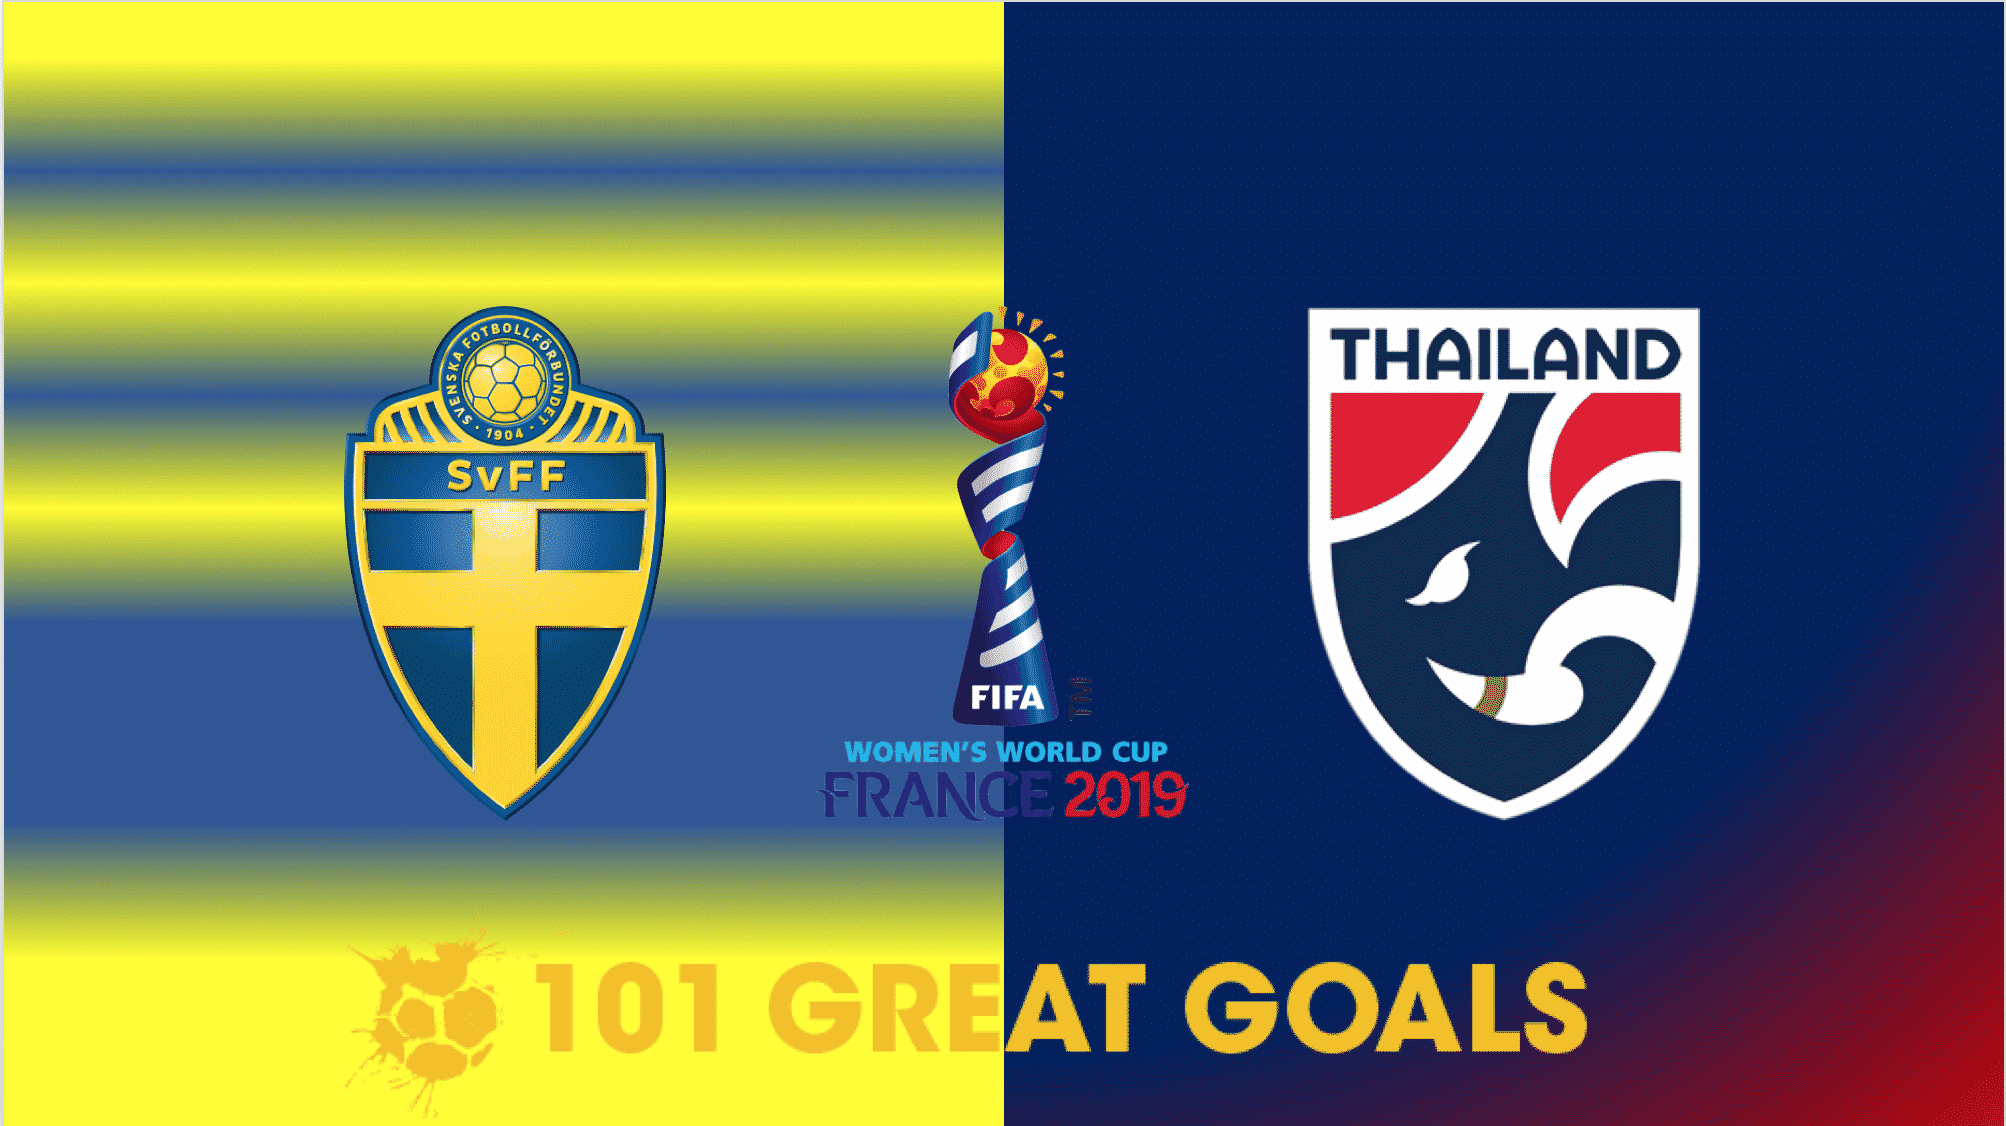 Sweden vs Thailand live streaming